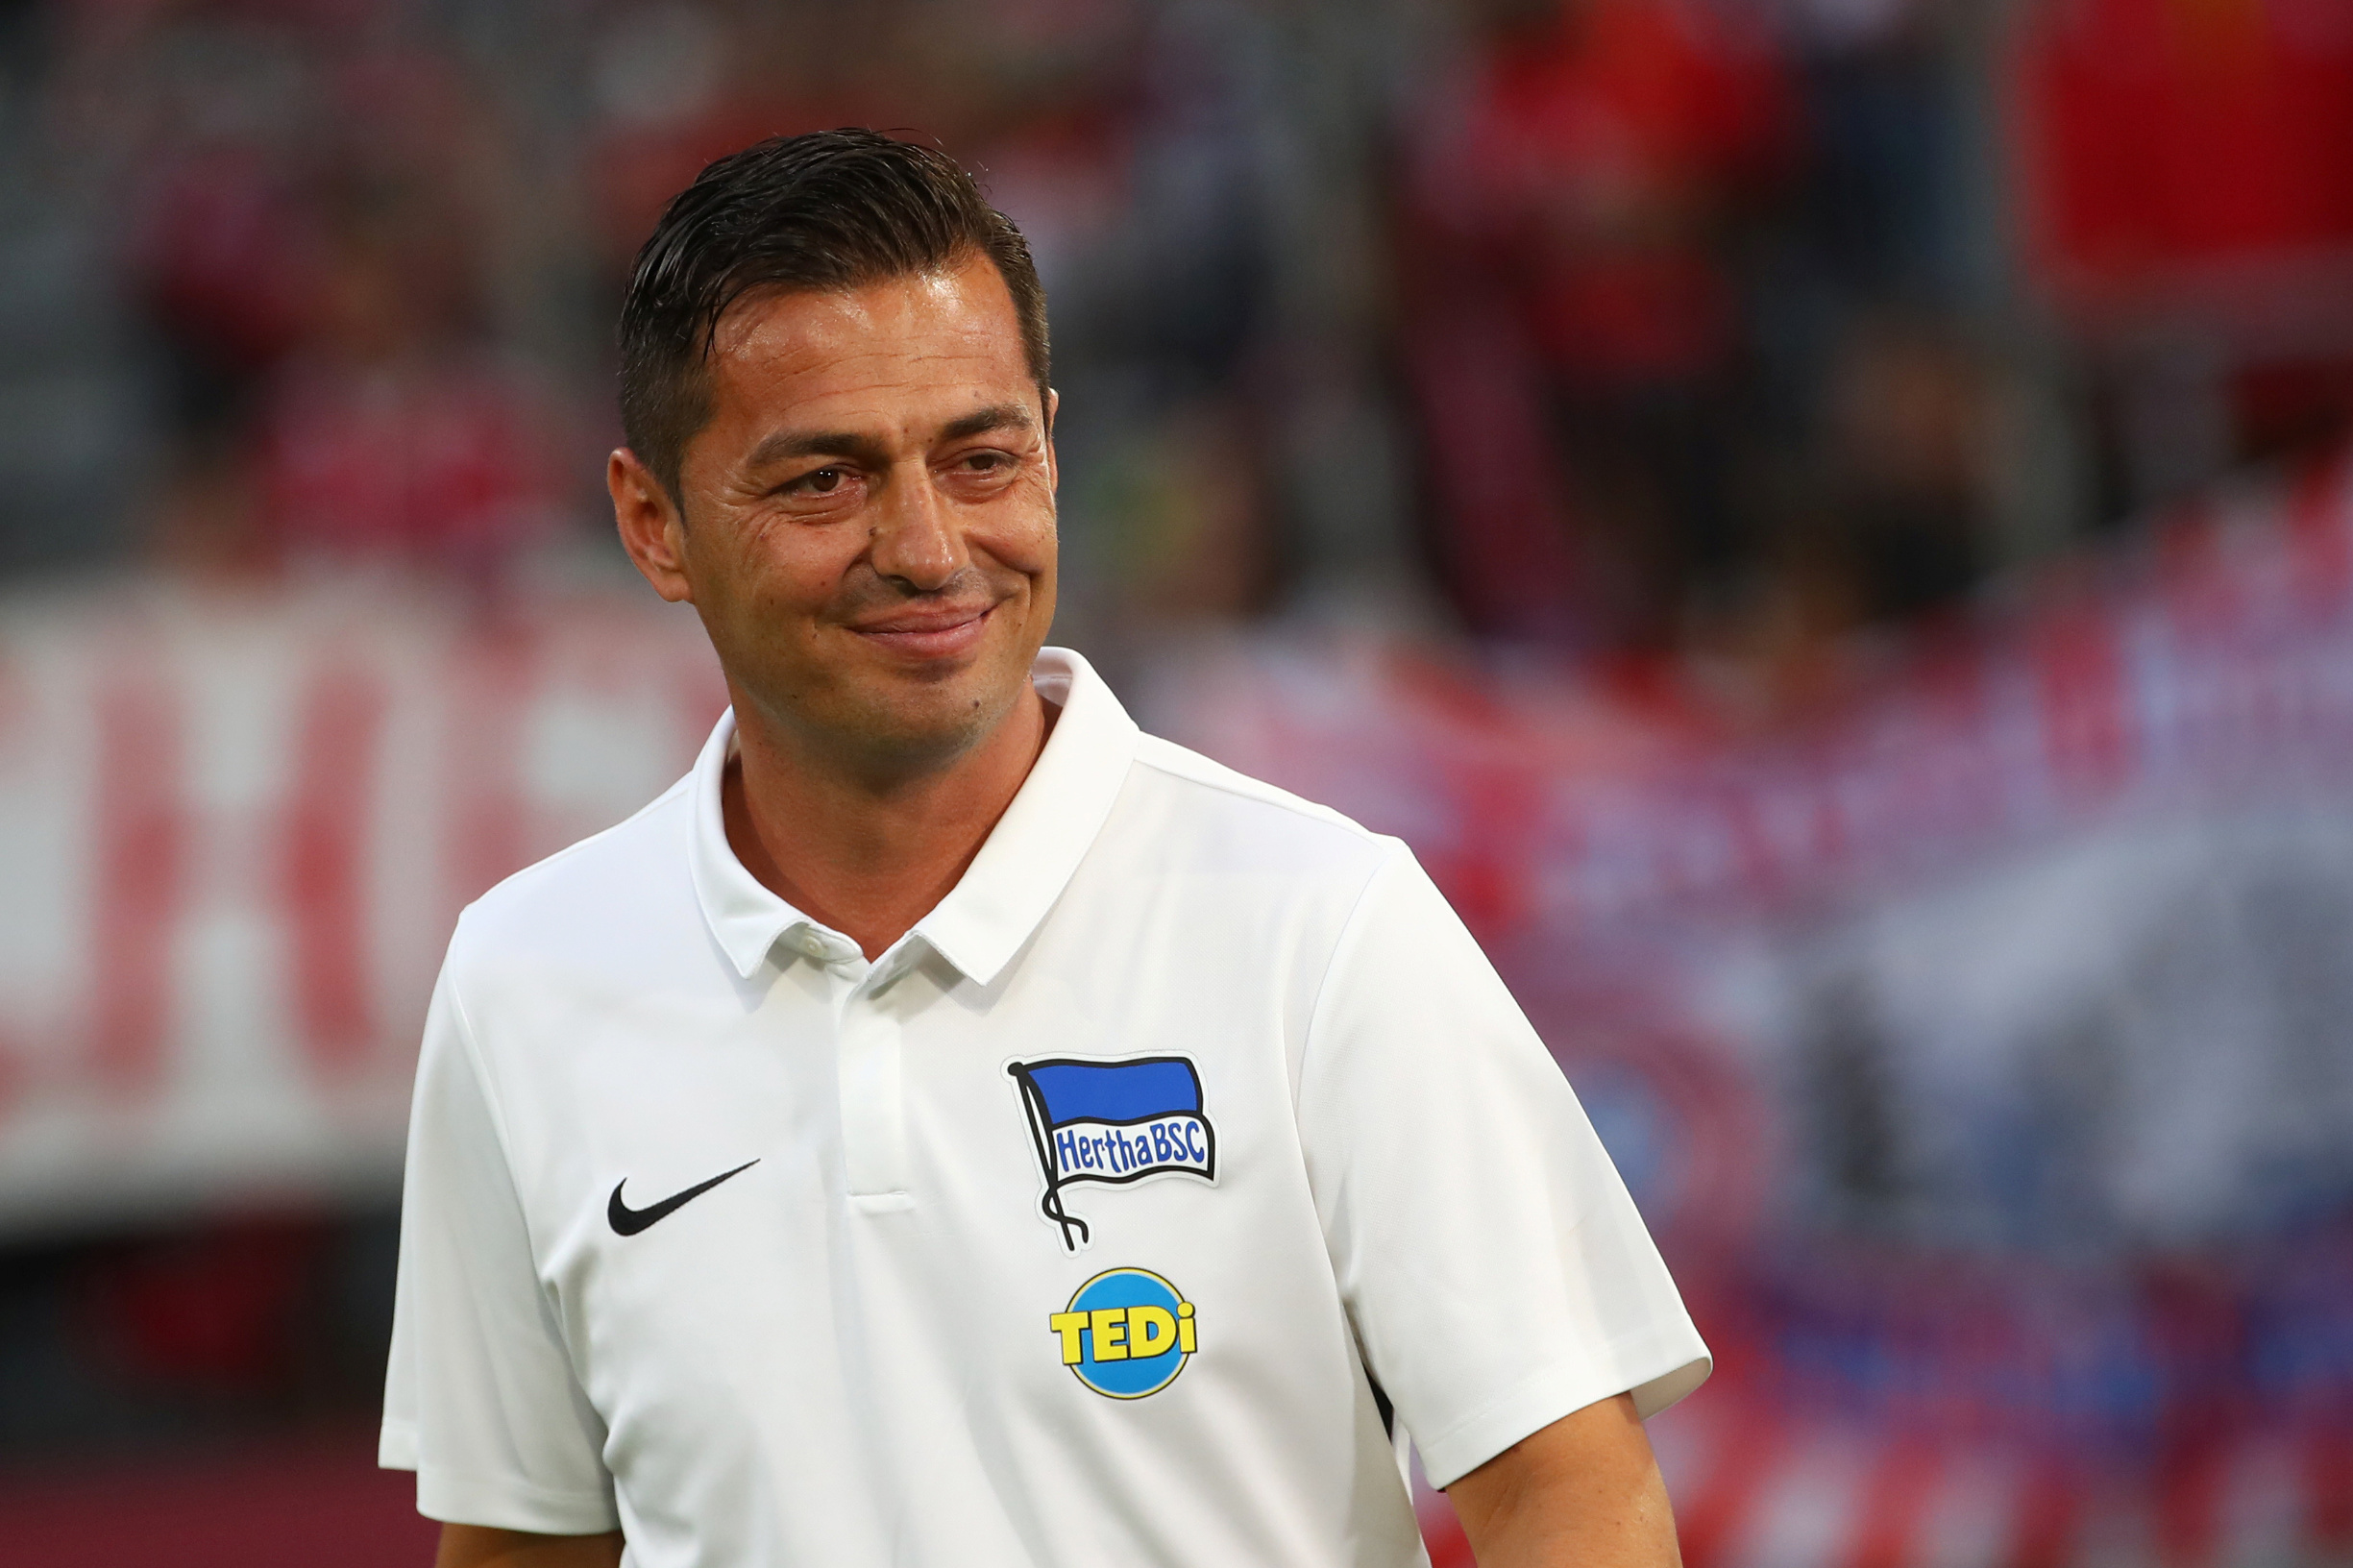 Soccer Football - Bundesliga - Bayern Munich v Hertha Berlin - Allianz Arena, Munich, Germany - August 16, 2019   Hertha BSC coach Ante Covic before the match       REUTERS/Michael Dalder    DFL regulations prohibit any use of photographs as image sequences and/or quasi-video - RC14EC3D2AD0